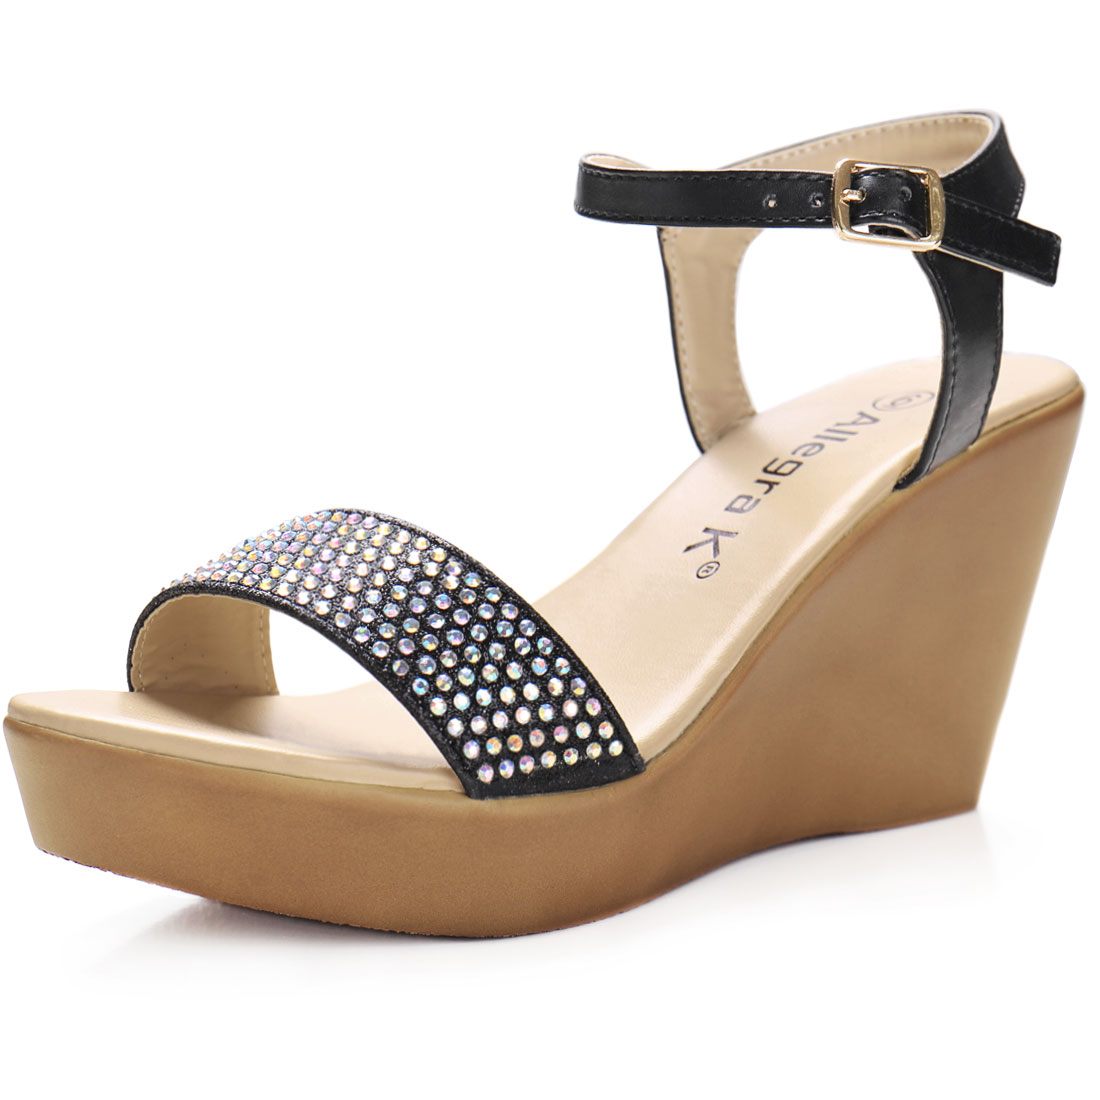 Woman Rhinestones Embellished Open Toe Wedge Sandals Black US 8